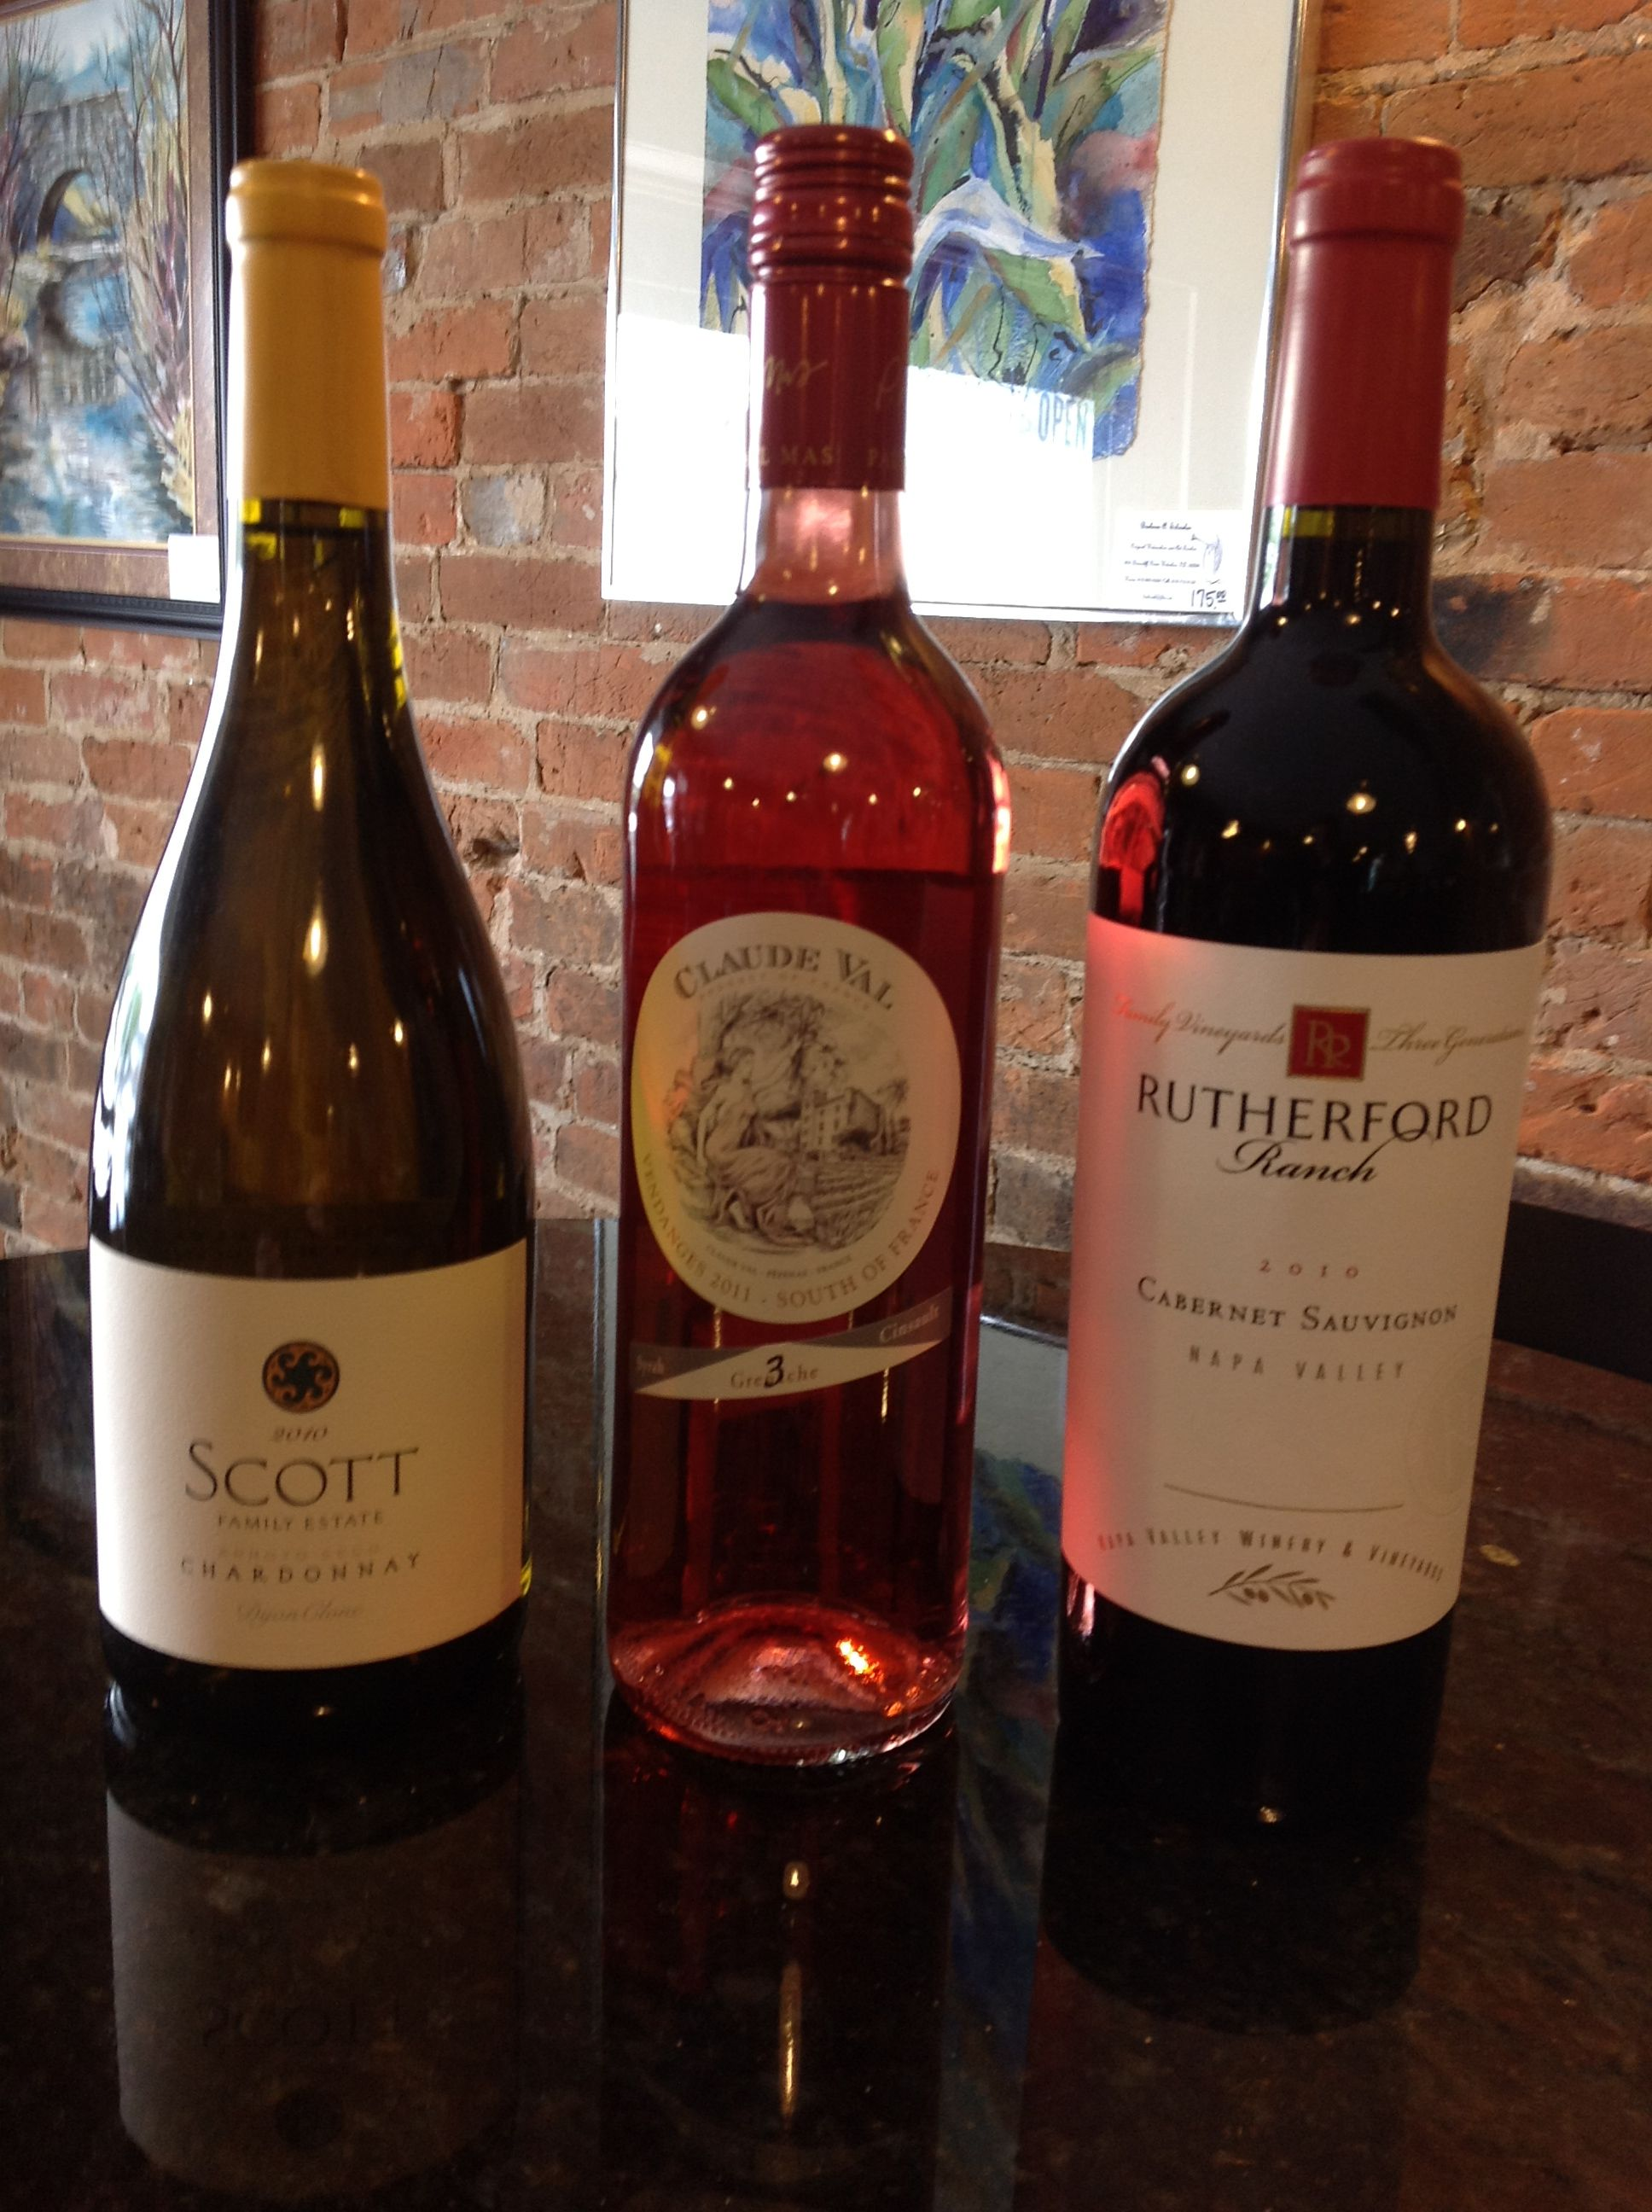 The Weekend Is Here Start Your Weekend At Chateau La Vin S Friday Evening Tasting Today We Are Tasting Scott Family Wine Bottle Grenache Cabernet Sauvignon